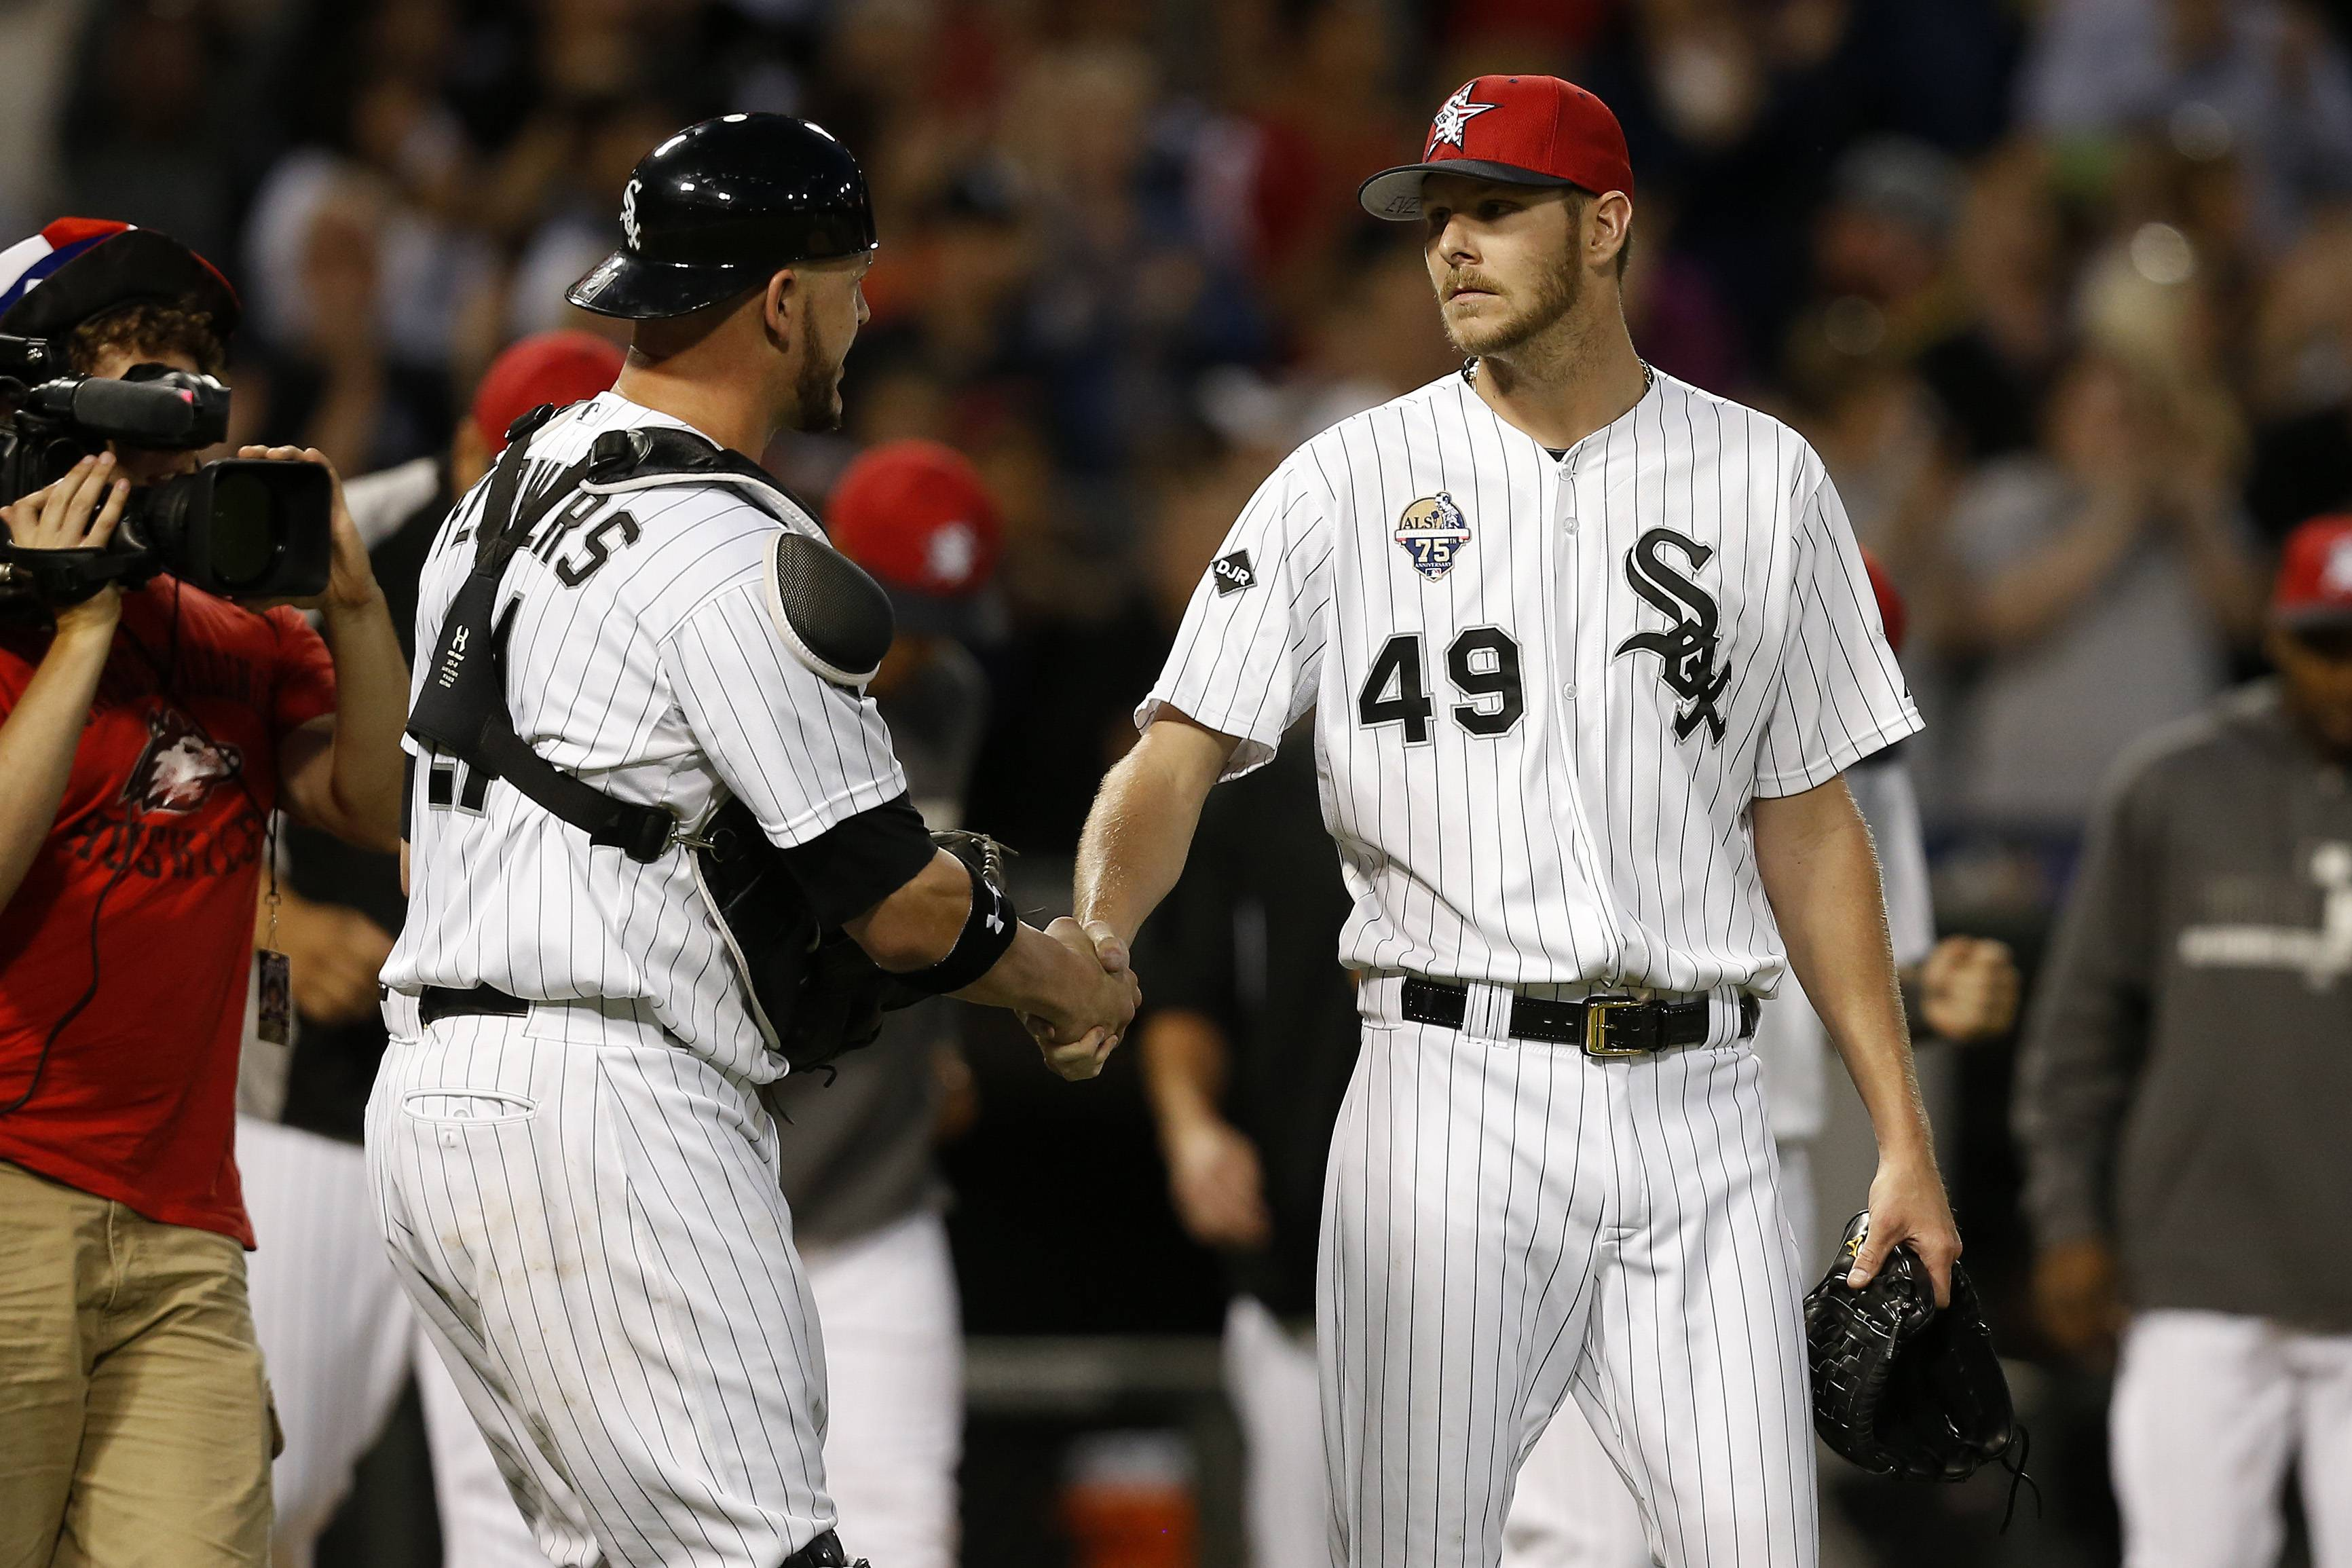 Chicago White Sox catcher Tyler Flowers, left, and starting pitcher Chris Sale, right, celebrate their 7-1 victory against the Seattle Mariners during the ninth inning of a baseball game on Friday, July 4, 2014, in Chicago.